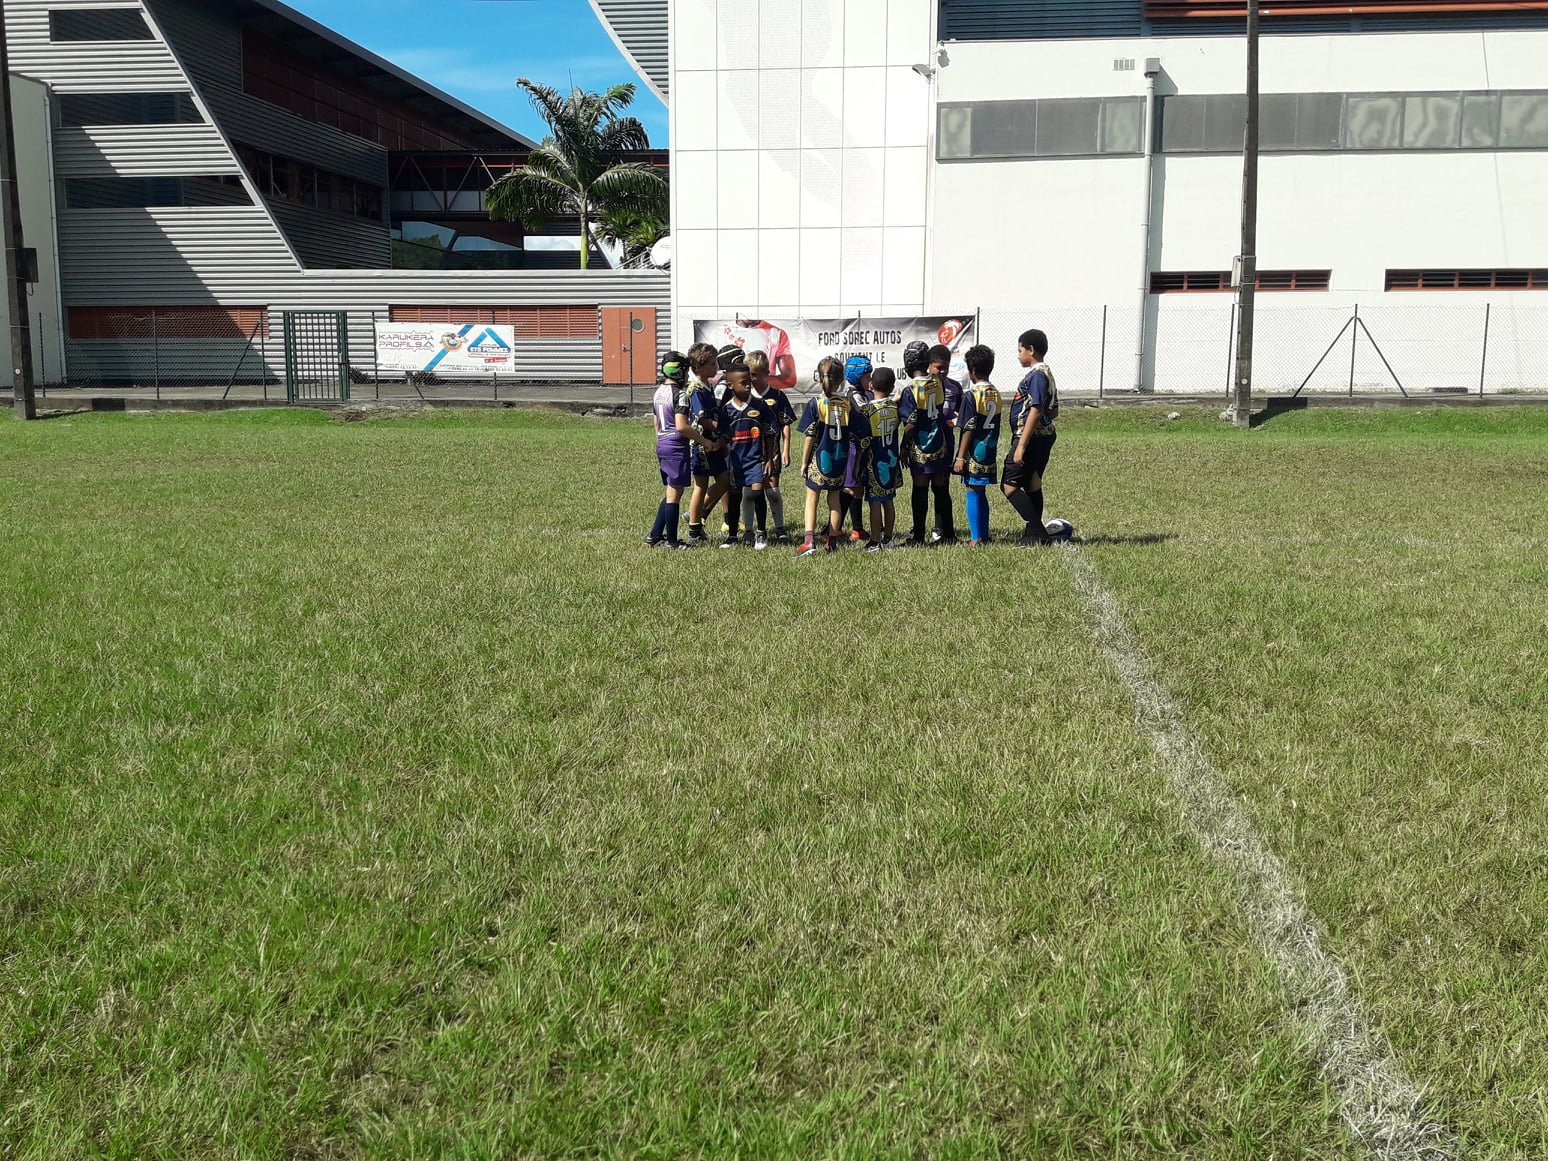 RUGBY CLUB GOYAVE – Portes ouvertes